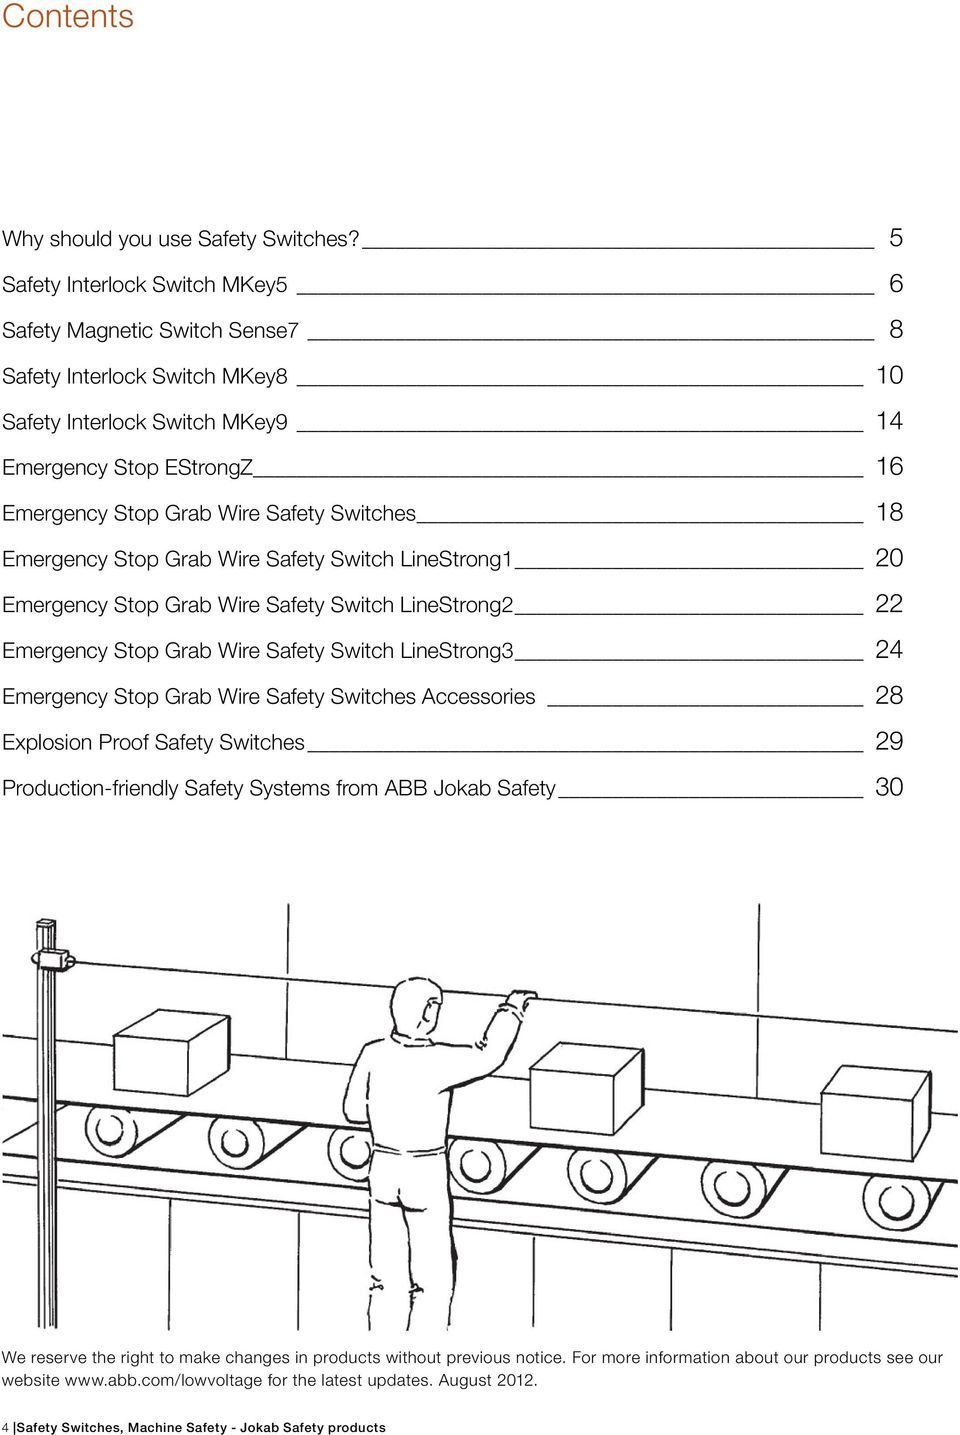 Safety Switches Machine Jokab Products Pdf Emergency Stop Button Wiring Diagram 18 Grab Wire Switch Linestrong1 20 Linestrong2